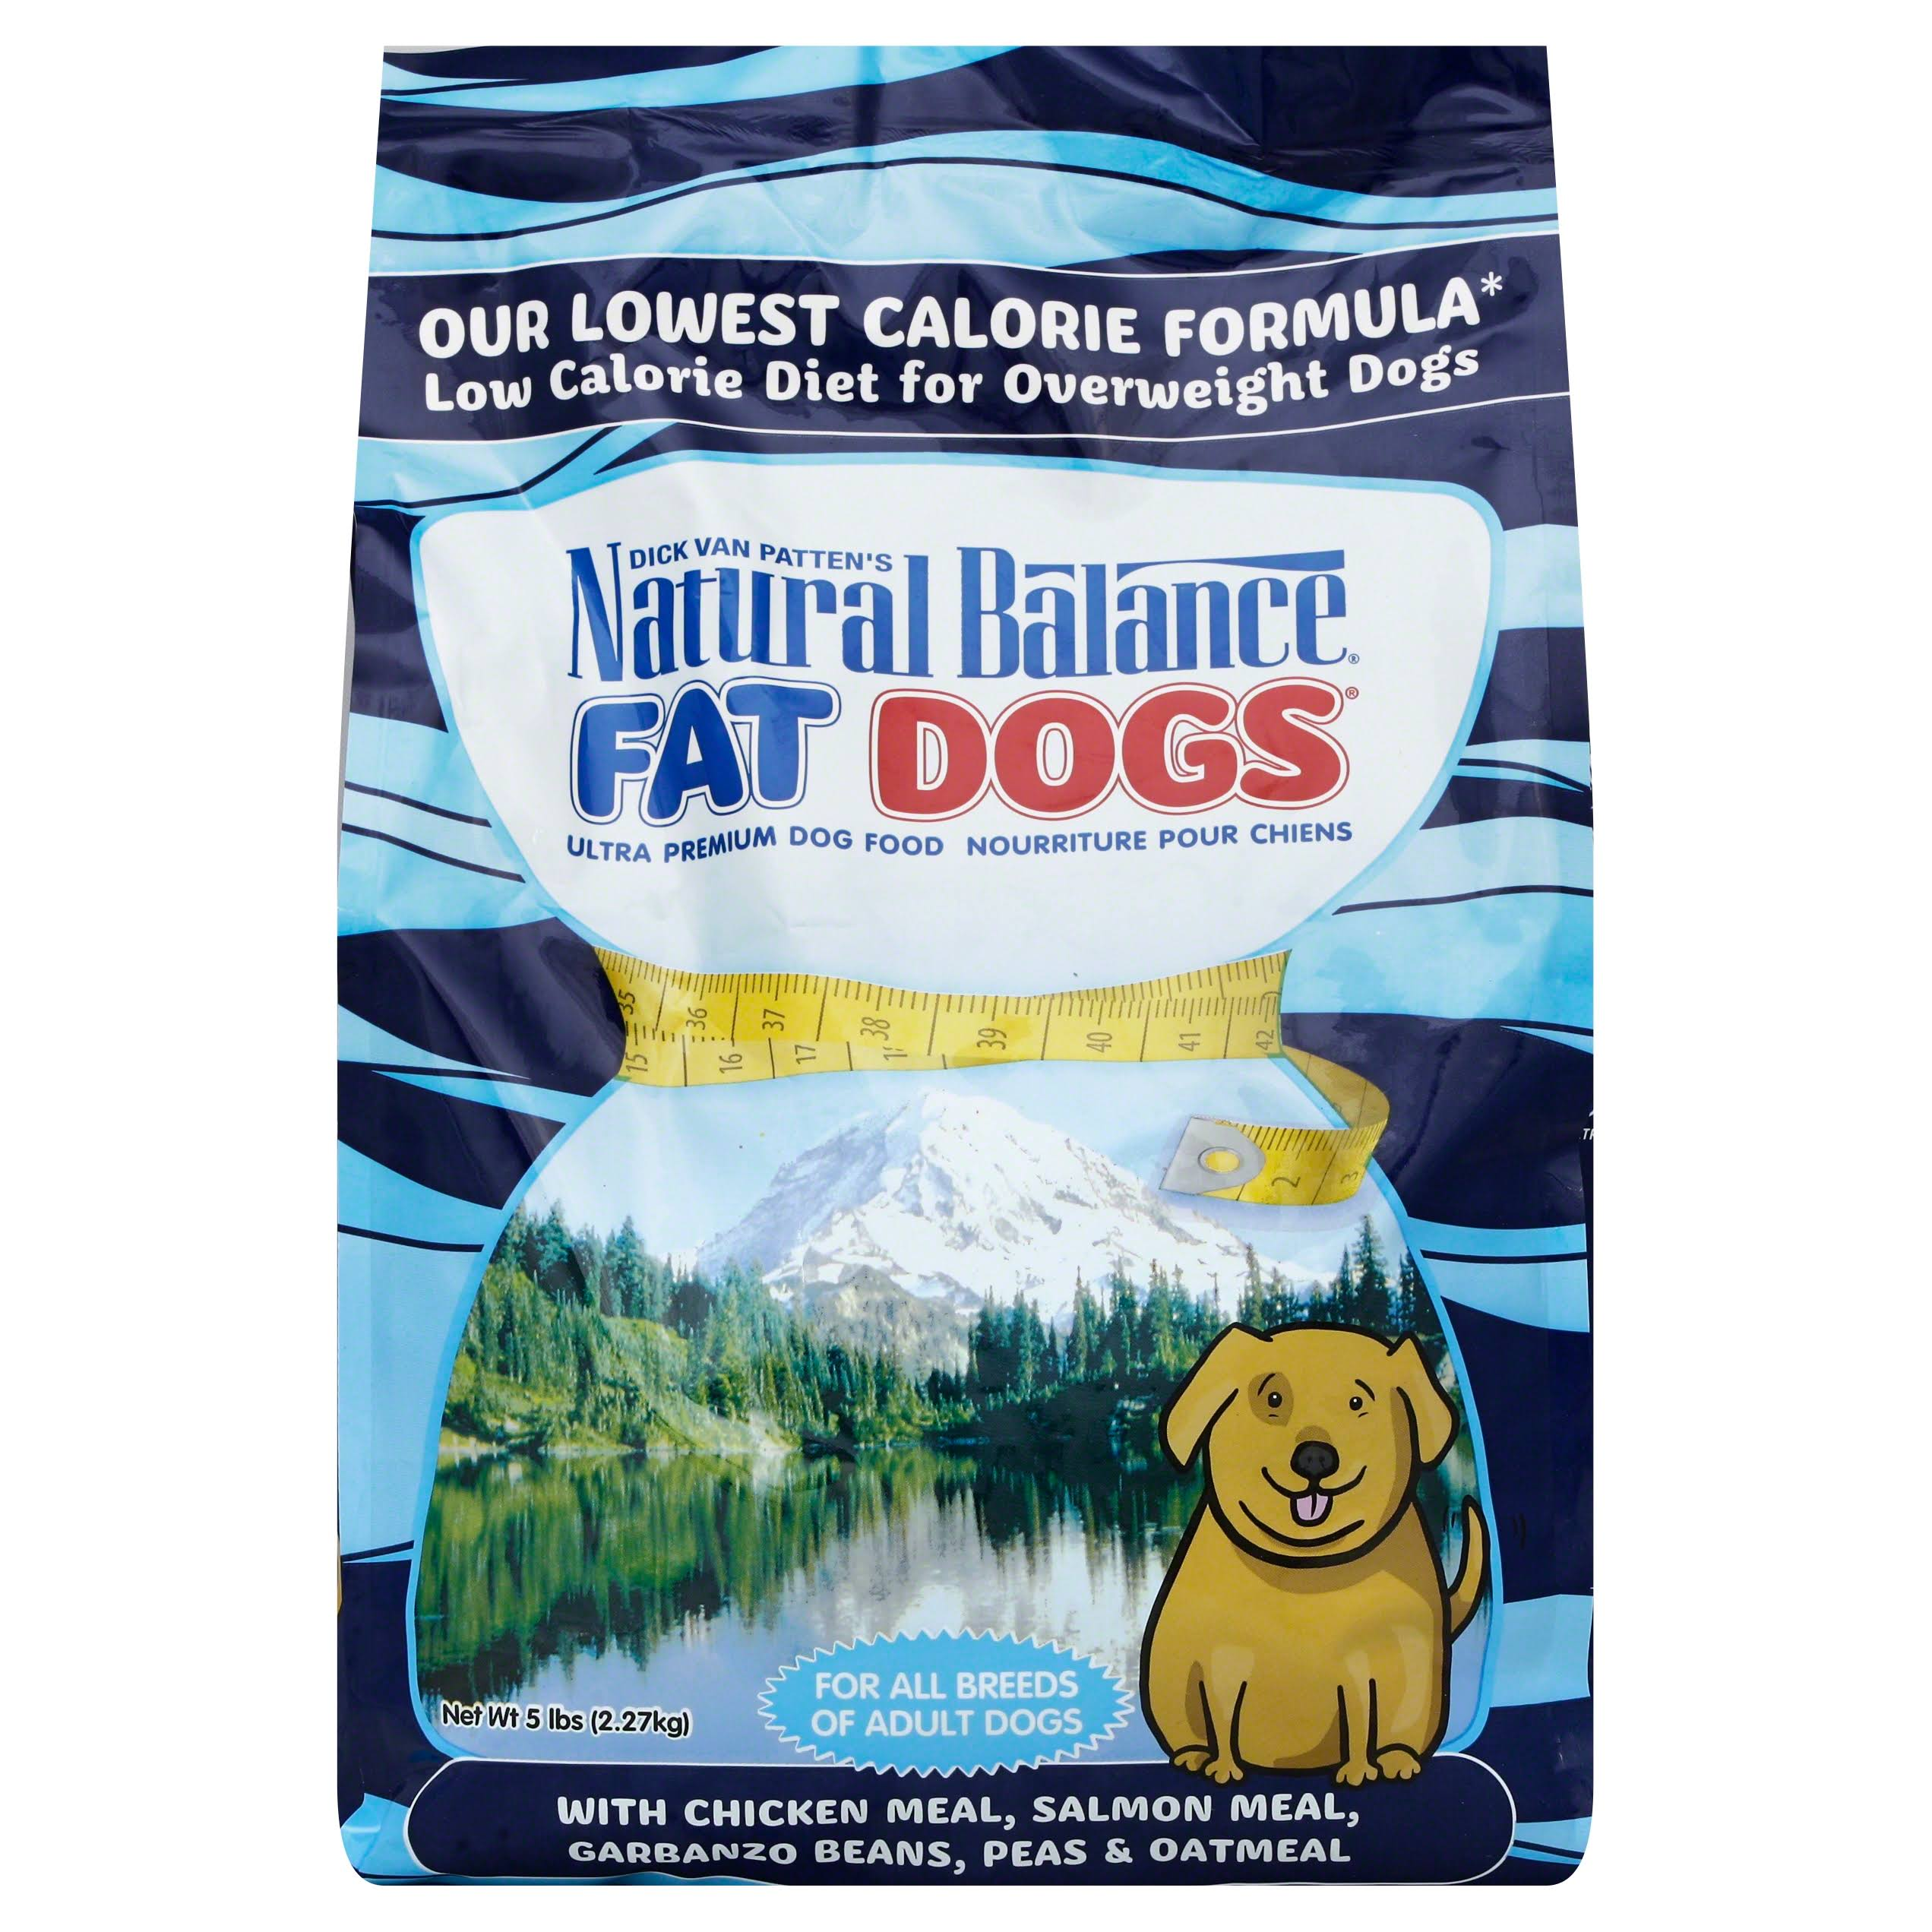 Natural Balance Fat Dogs Chicken and Salmon Formula Dry Dog Food - 5lb